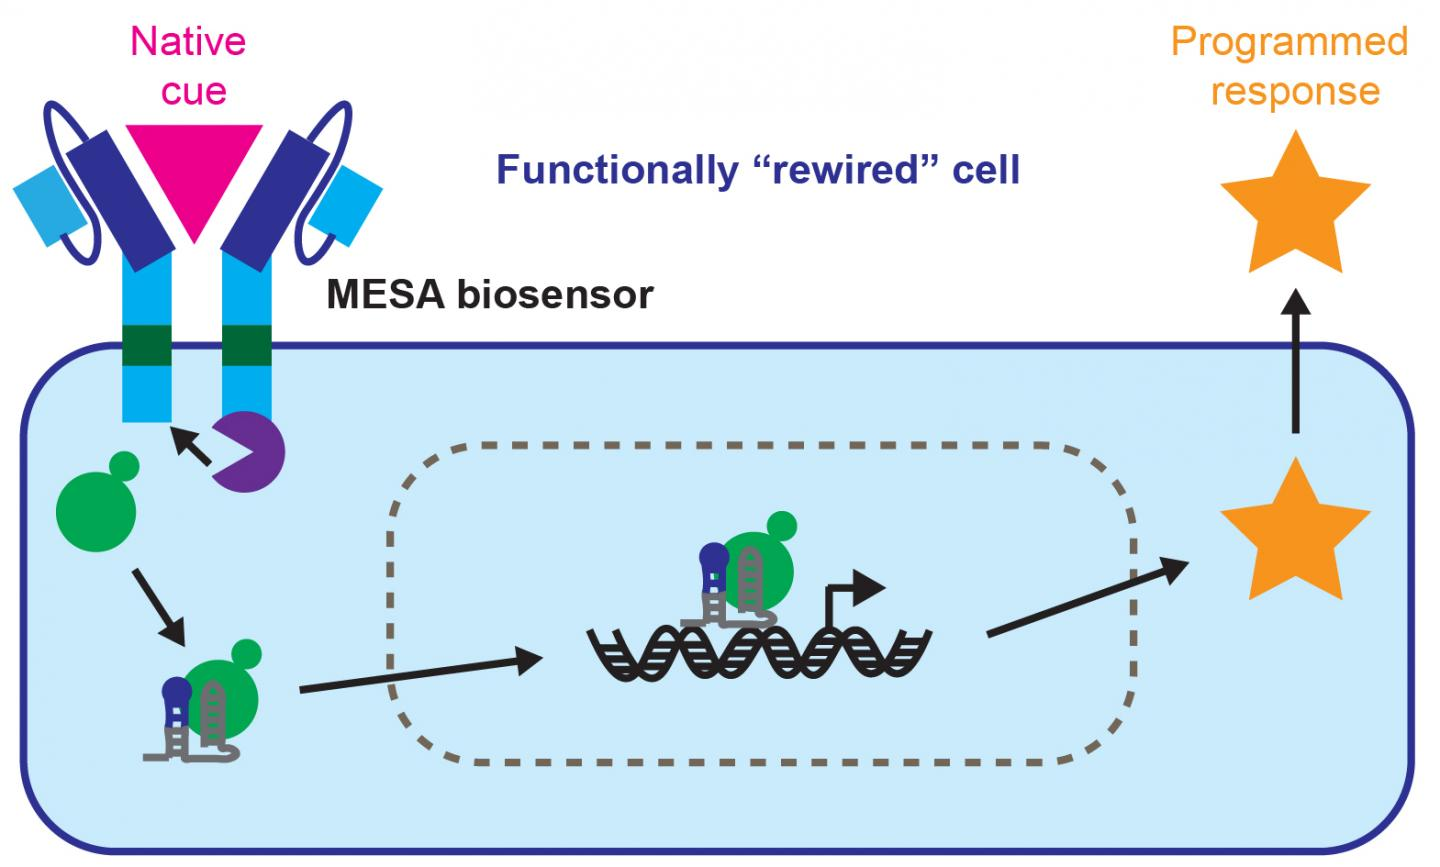 In a new study, human immune cells were engineered to generate a different output than they ordinarily would in response to an environmental input. Specifically, molecular components were installed that allowed the cells to recognize a tumor-derived protein and produce an immune-stimulating factor. This sort of rewiring of cellular input-output shows promise not only in cancer immunotherapy, but in other translational applications, as well as in basic biological research. MESA: modular extracellular sensor architecture. [Northwestern University]